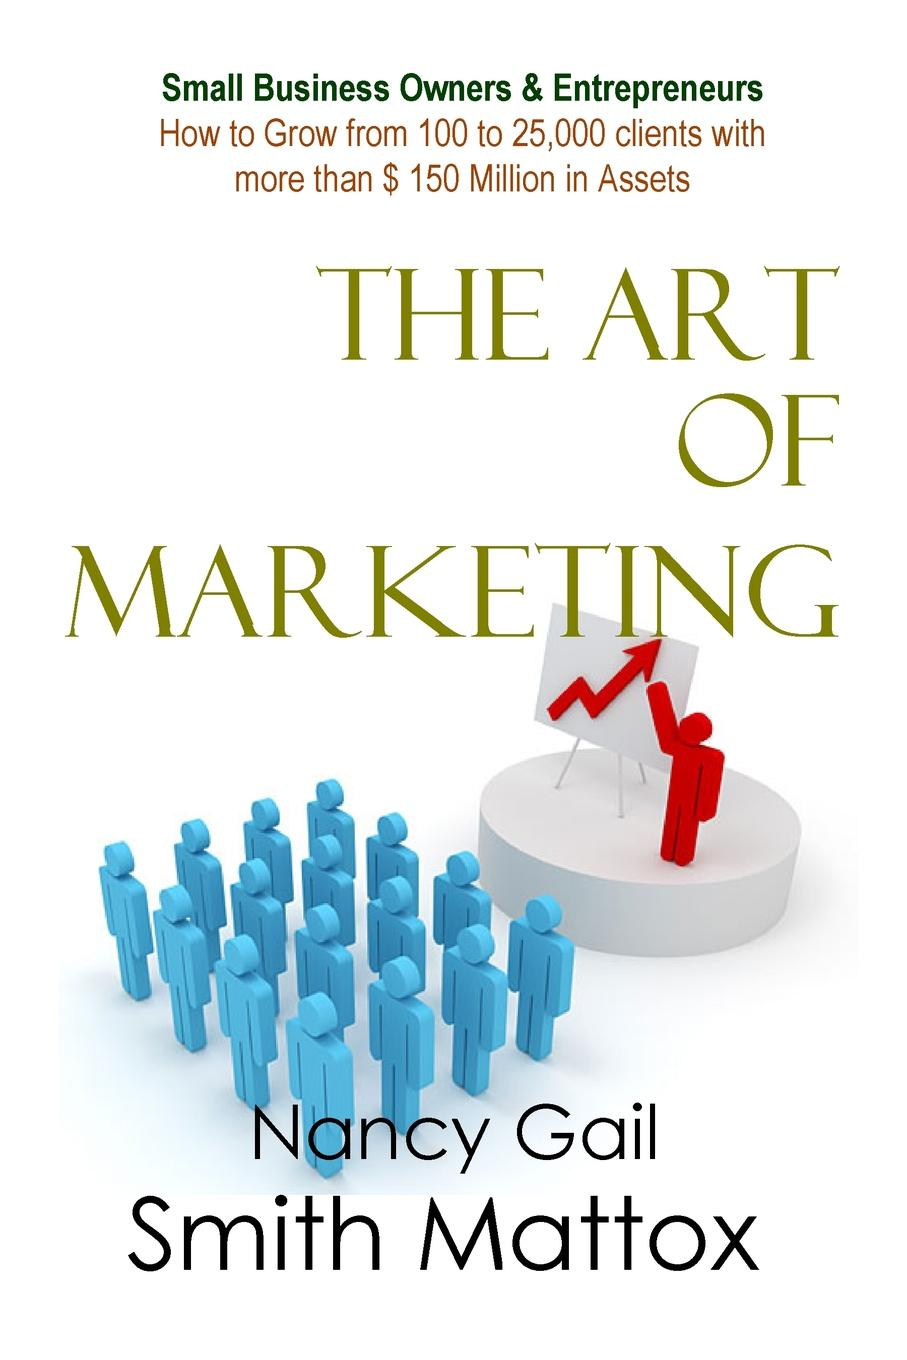 Nancy Gail Smith Mattox The Art of Marketing dee blick the ultimate small business marketing book